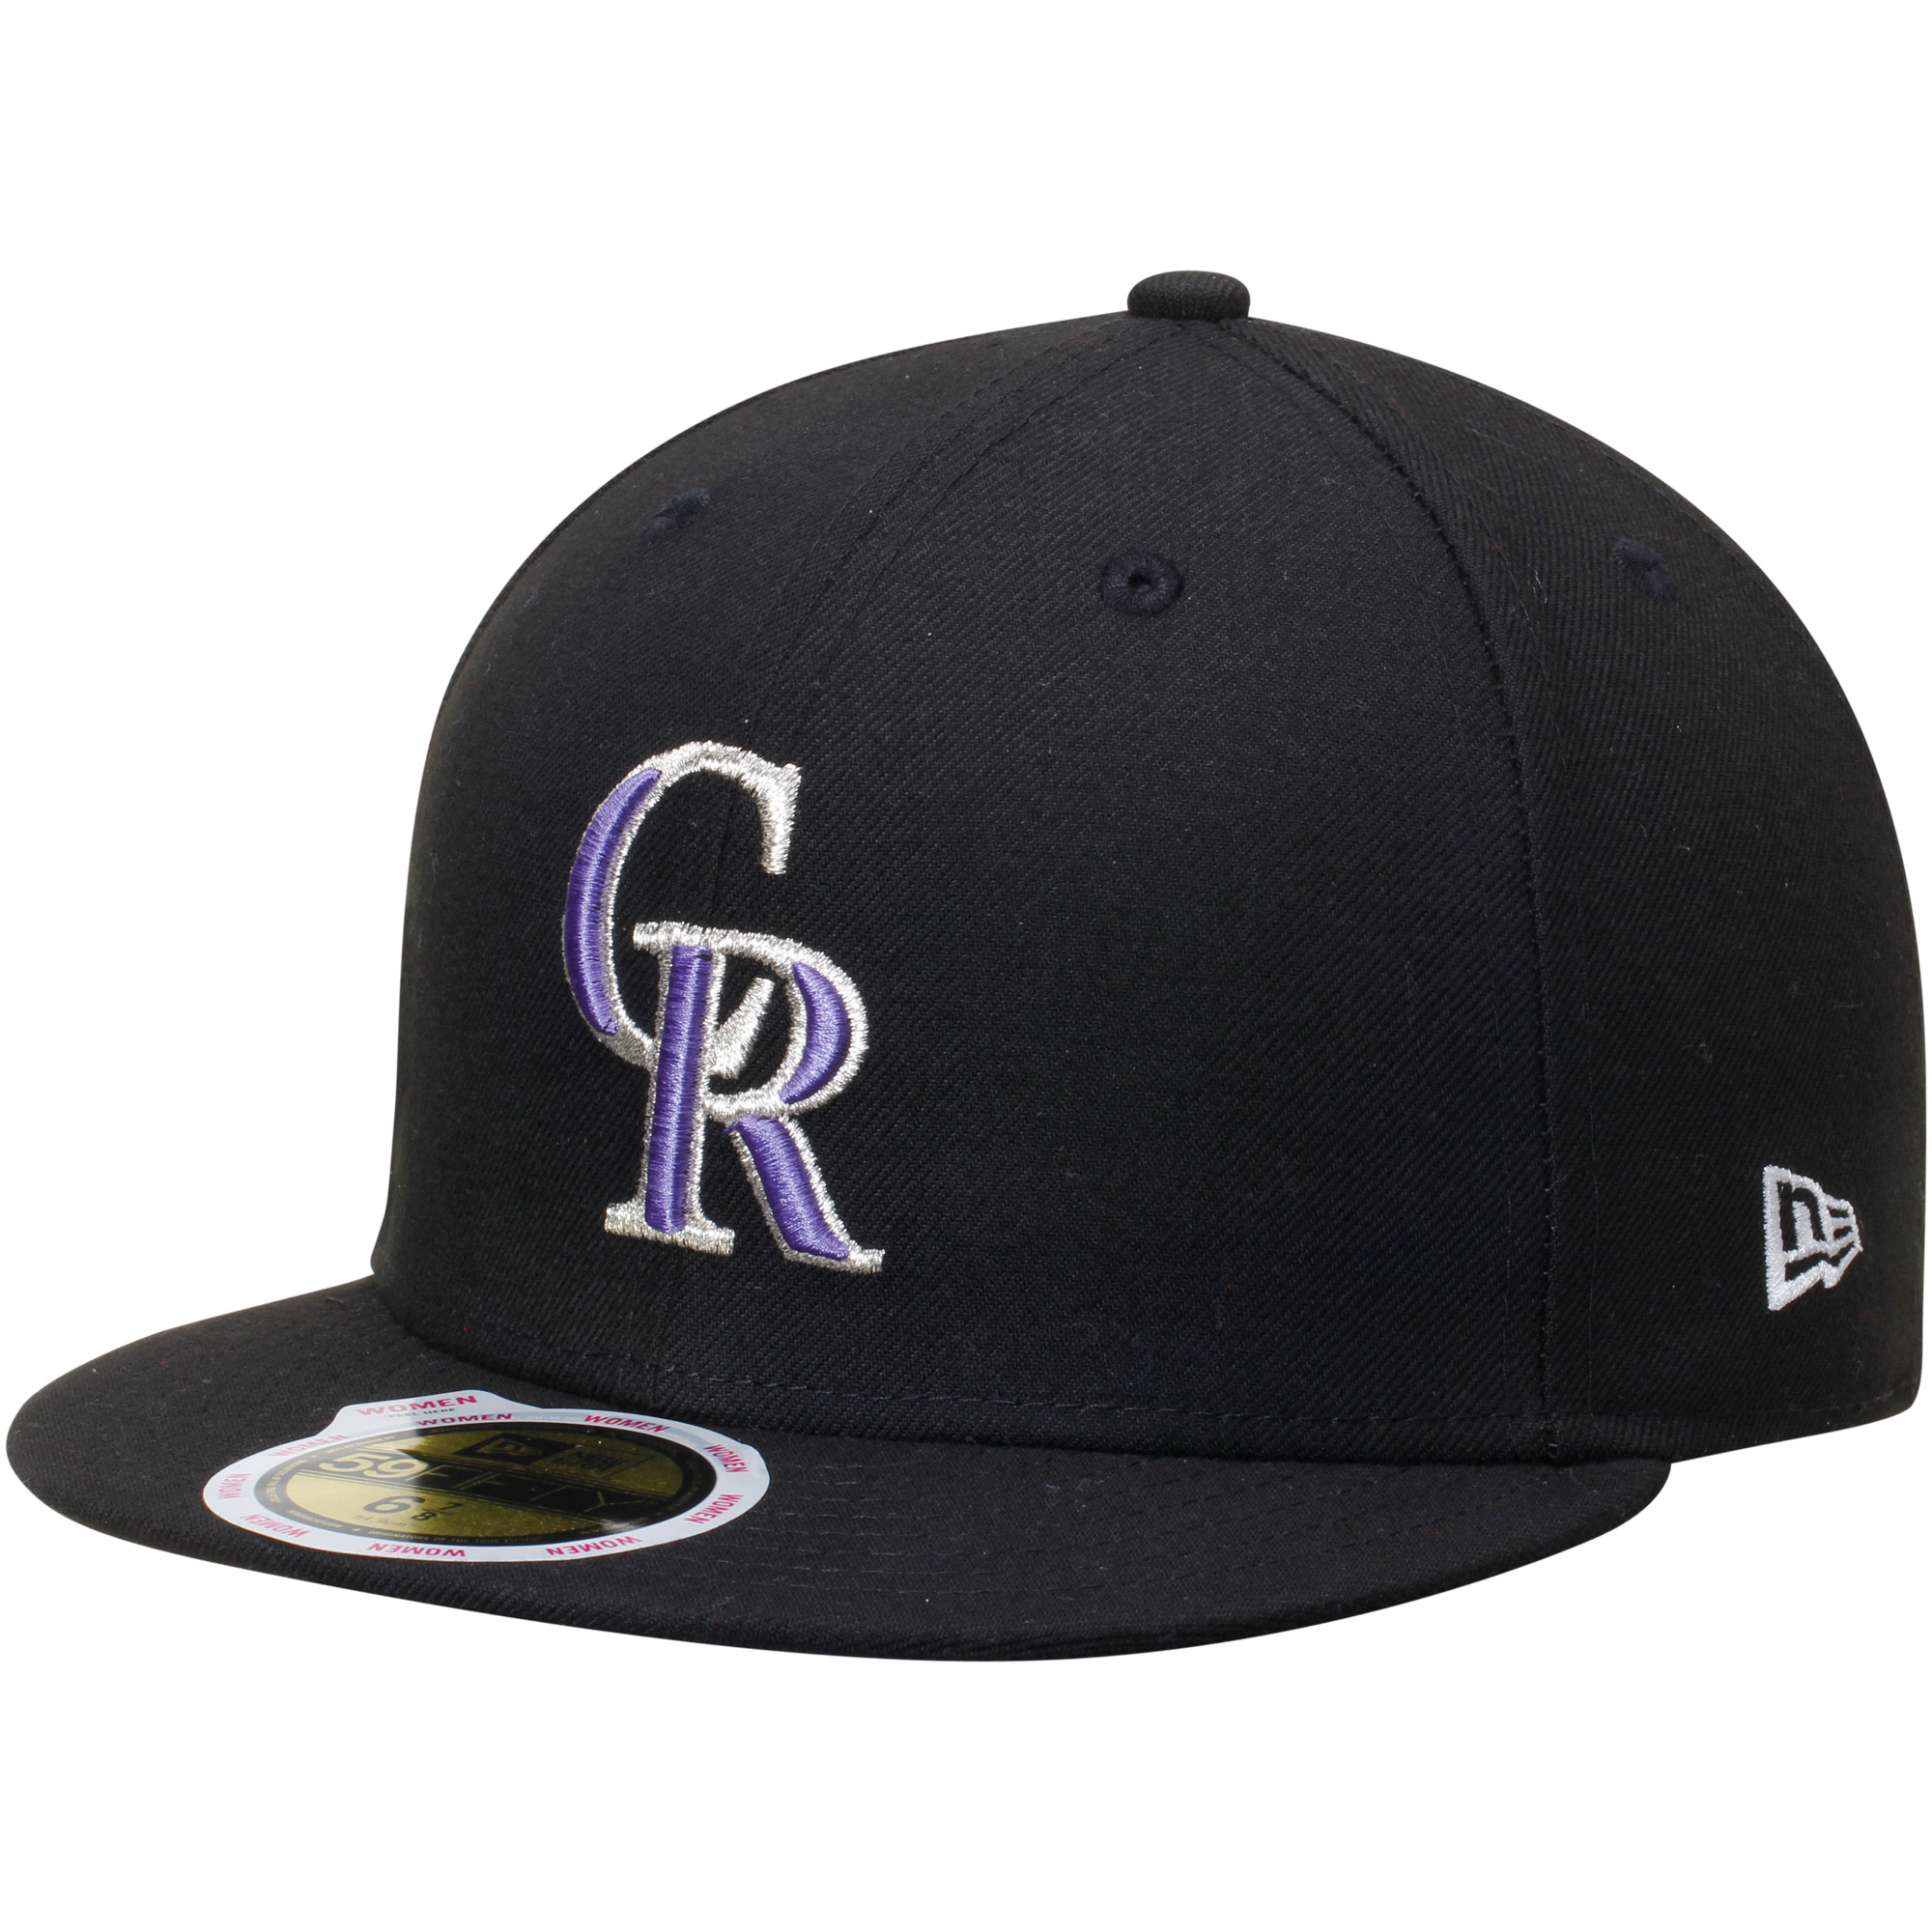 Women's New Era Black Colorado Rockies Authentic Collection On-Field 59FIFTY Fitted Hat by NEW ERA CAP COMPANY